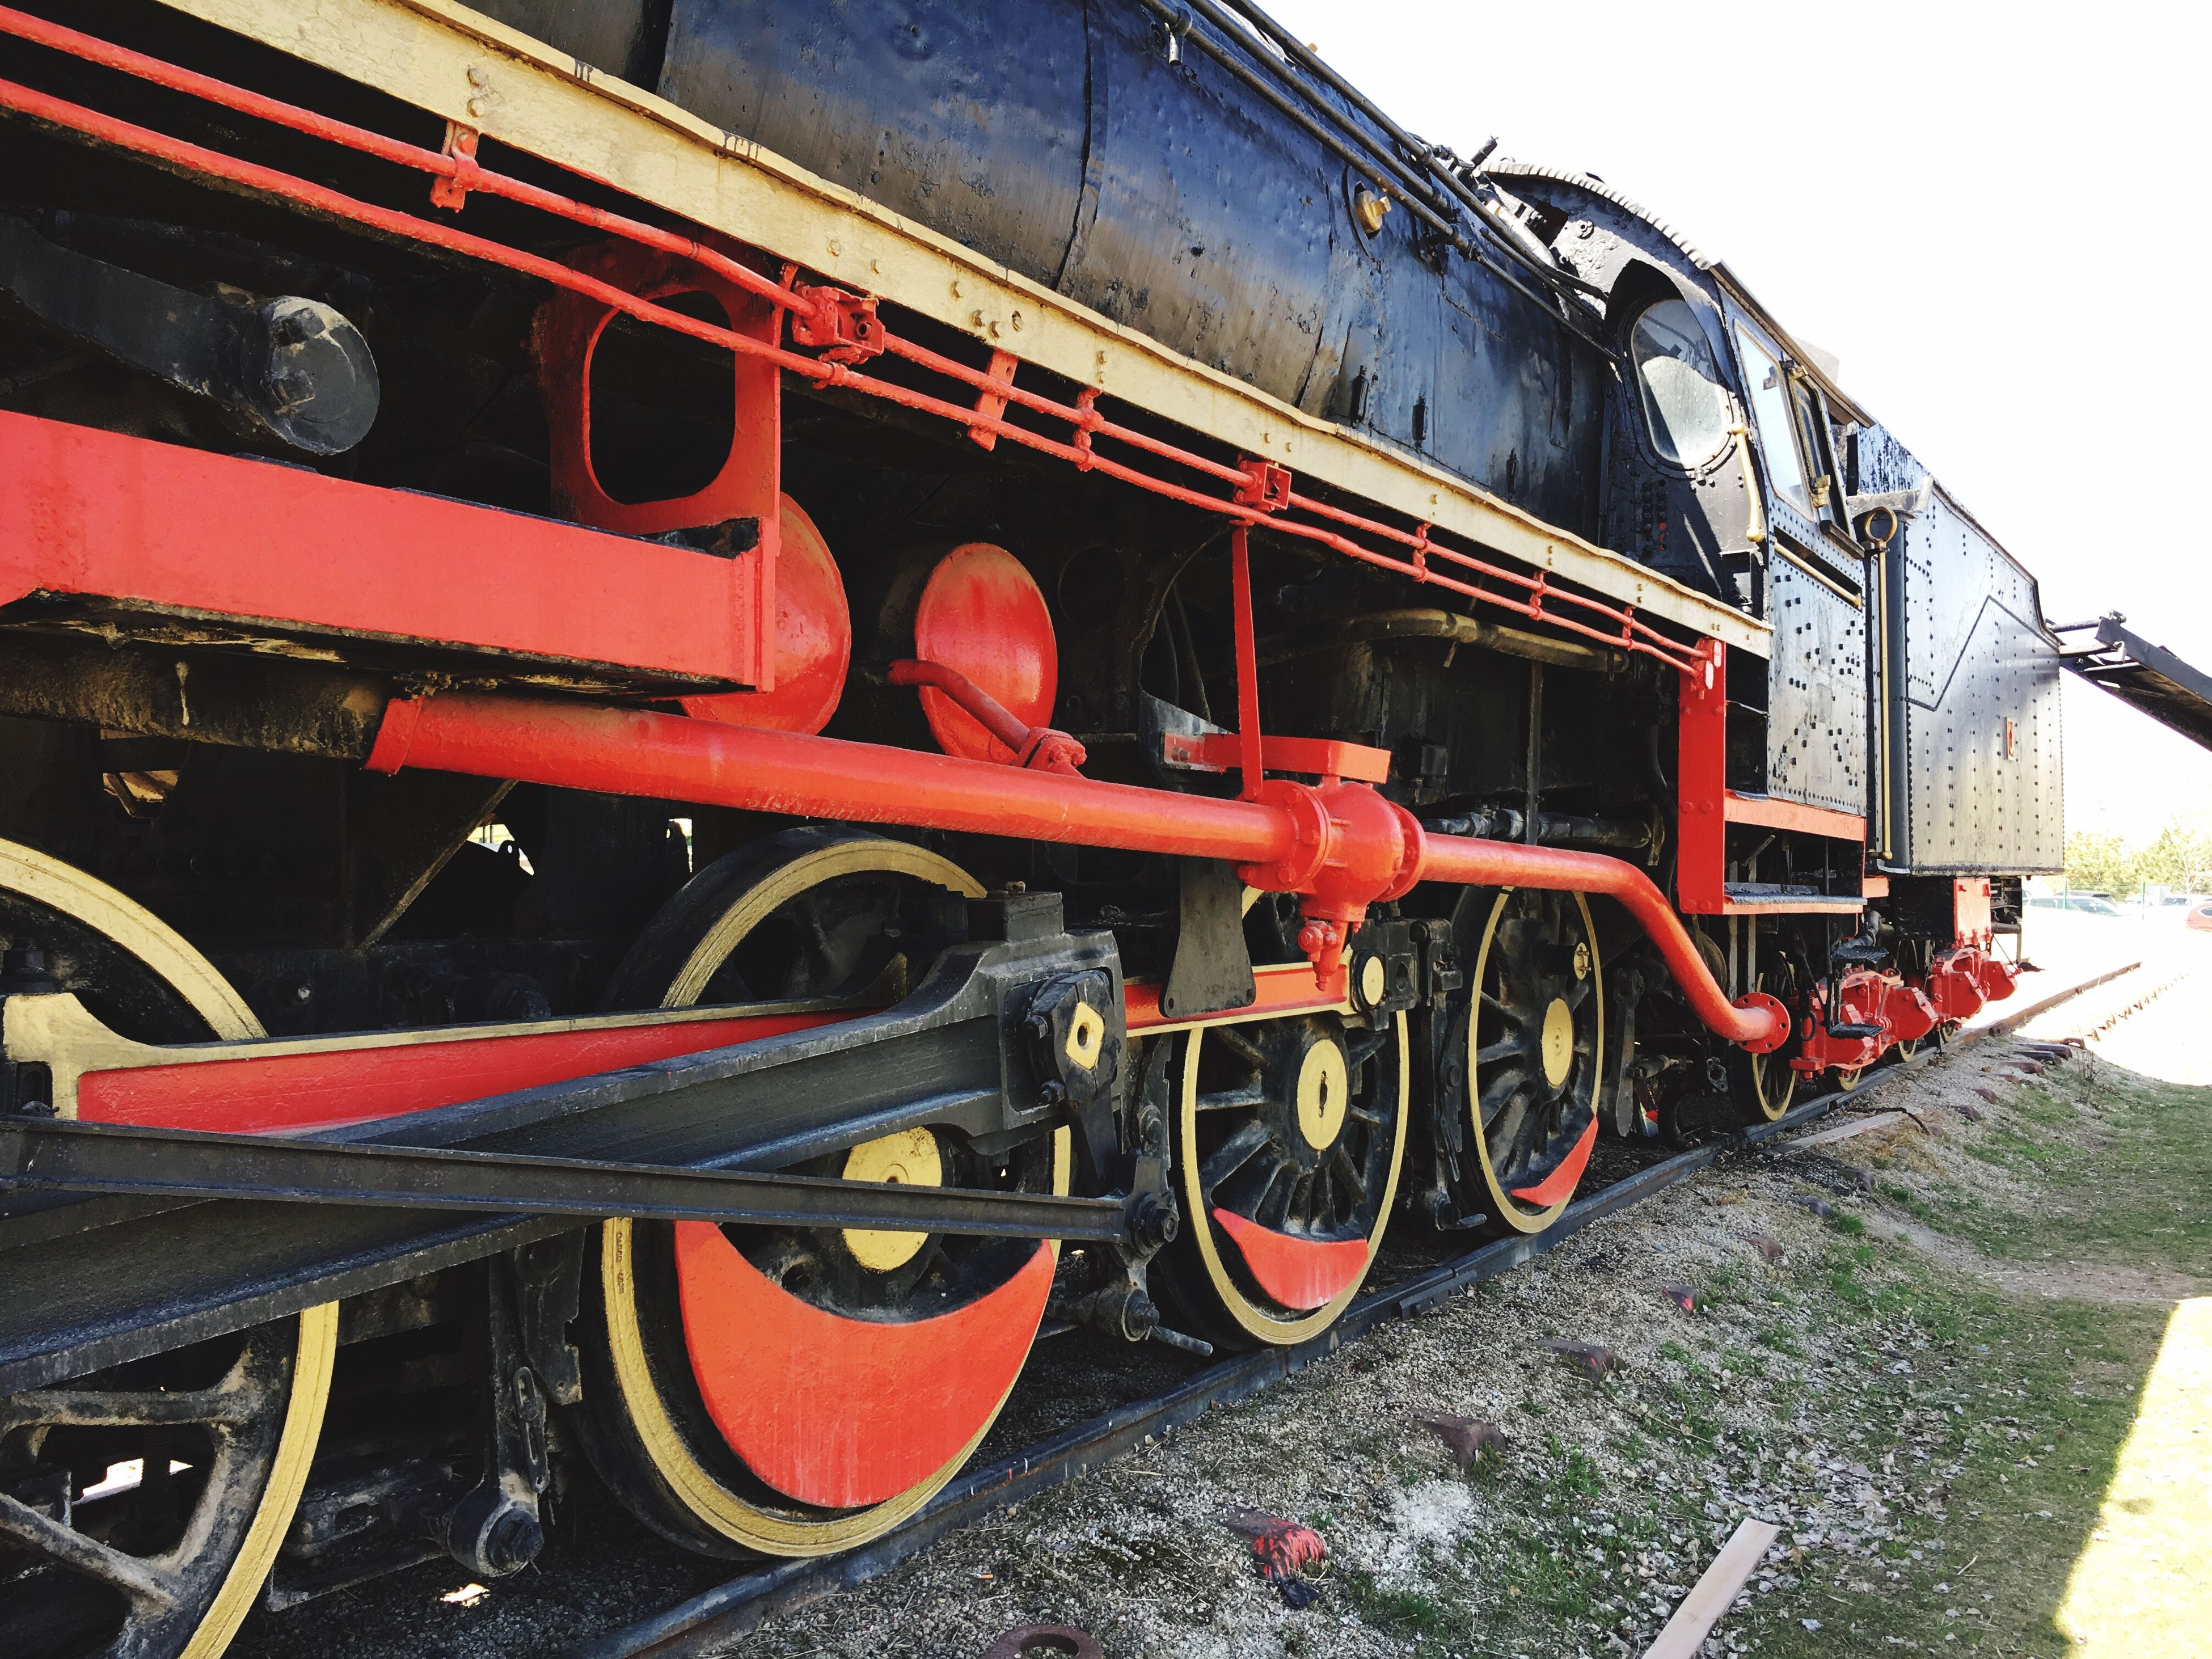 transportation, mode of transport, train - vehicle, old-fashioned, travel, rail transportation, outdoors, red, no people, locomotive, day, steam train, public transportation, close-up